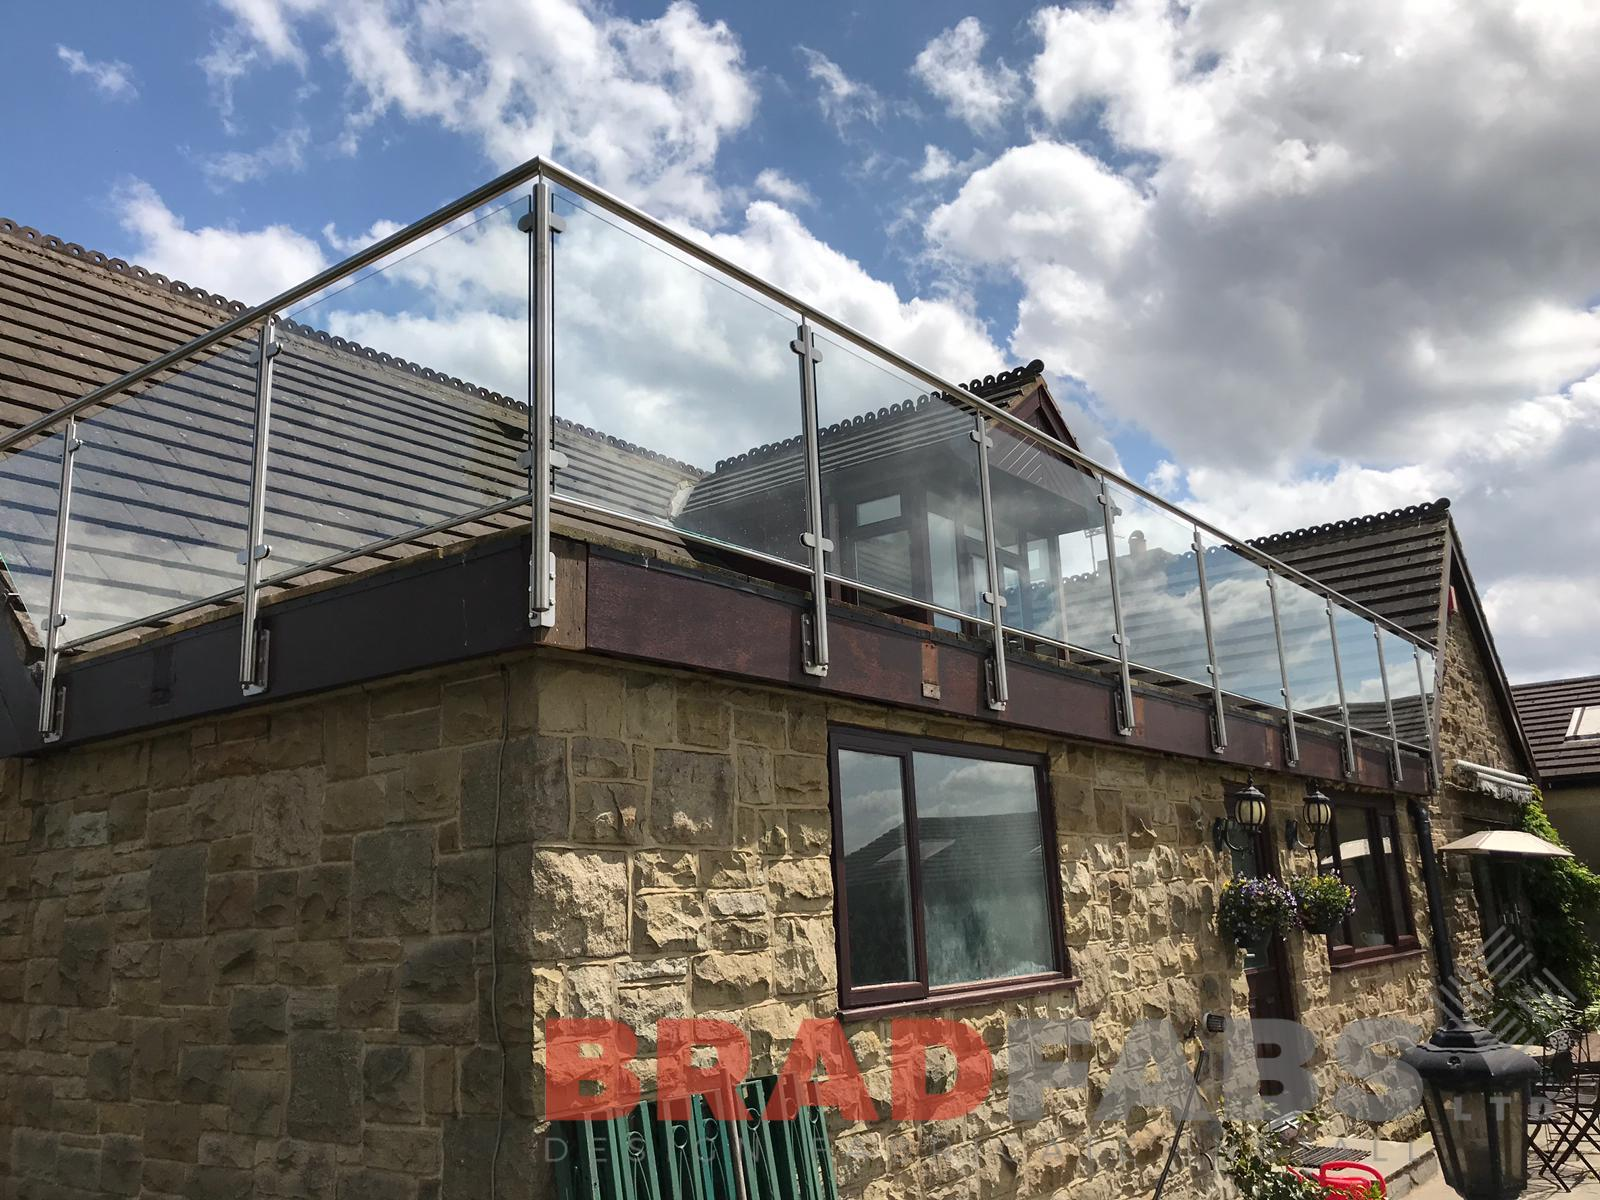 Bespoke balustrade added to customers existing flat roof, 10mm toughened safety glass infill panels with stainless steel toprail by Bradfabs Ltd